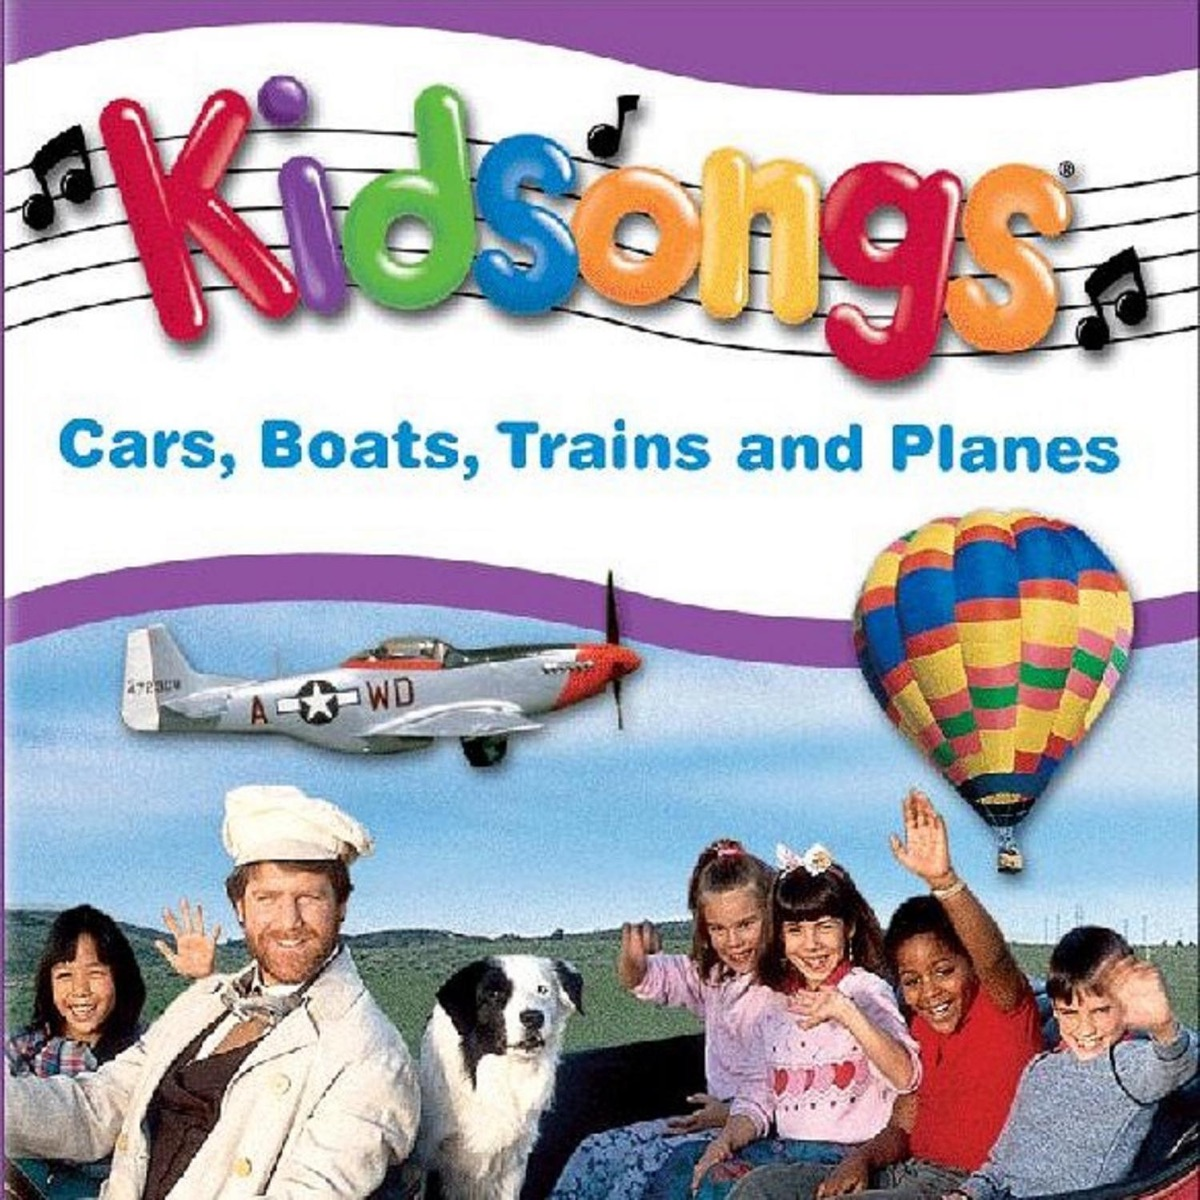 Kidsongs: Cars, Boats, Trains and Planes Album Cover by Kidsongs